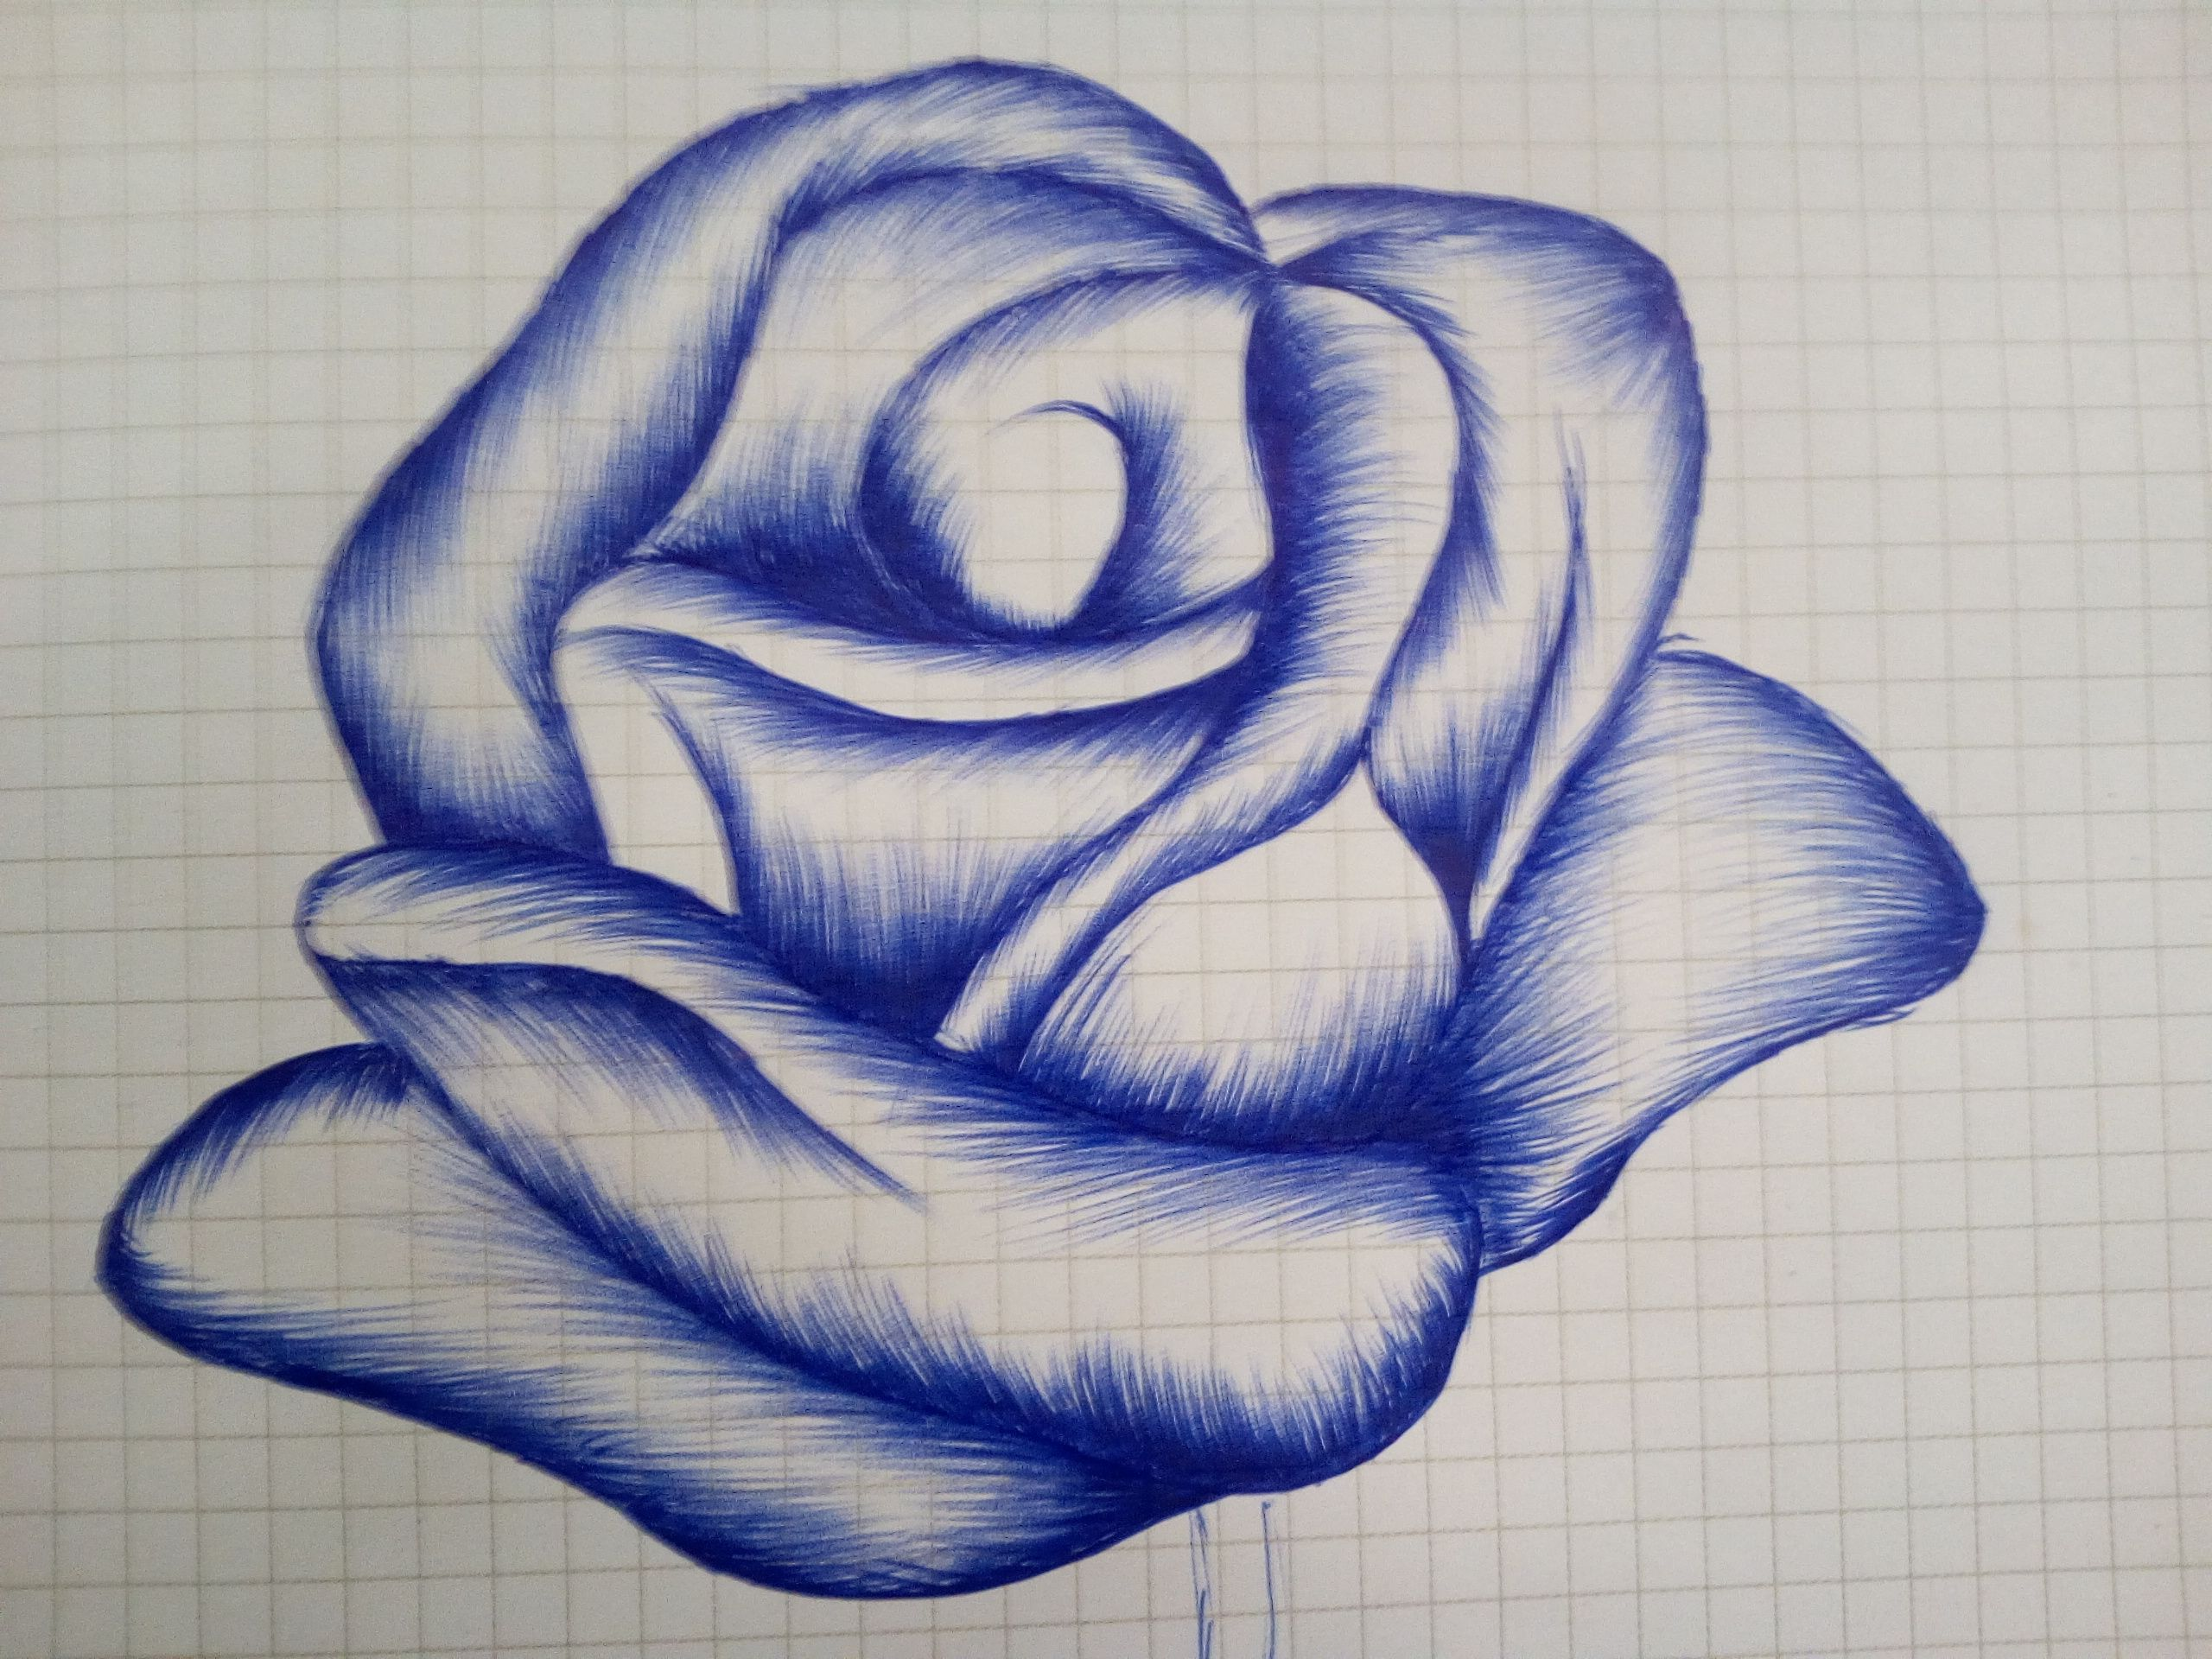 rose drawing pen at getdrawings com free for personal use rose